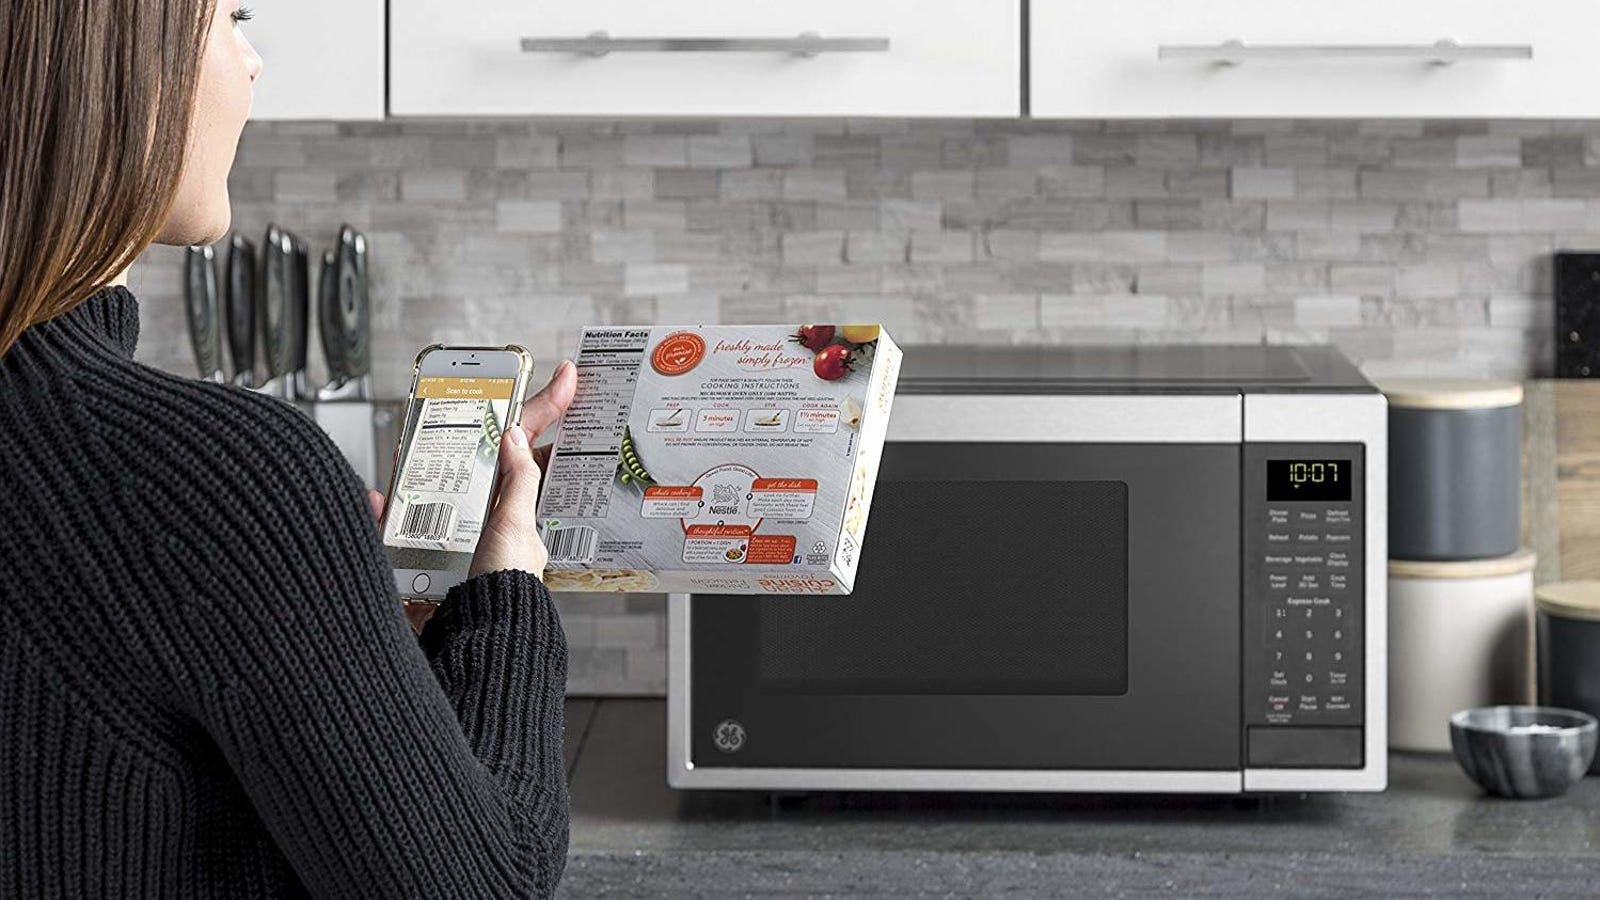 This Microwave Works With Alexa, and Comes Bundled With an Echo Dot